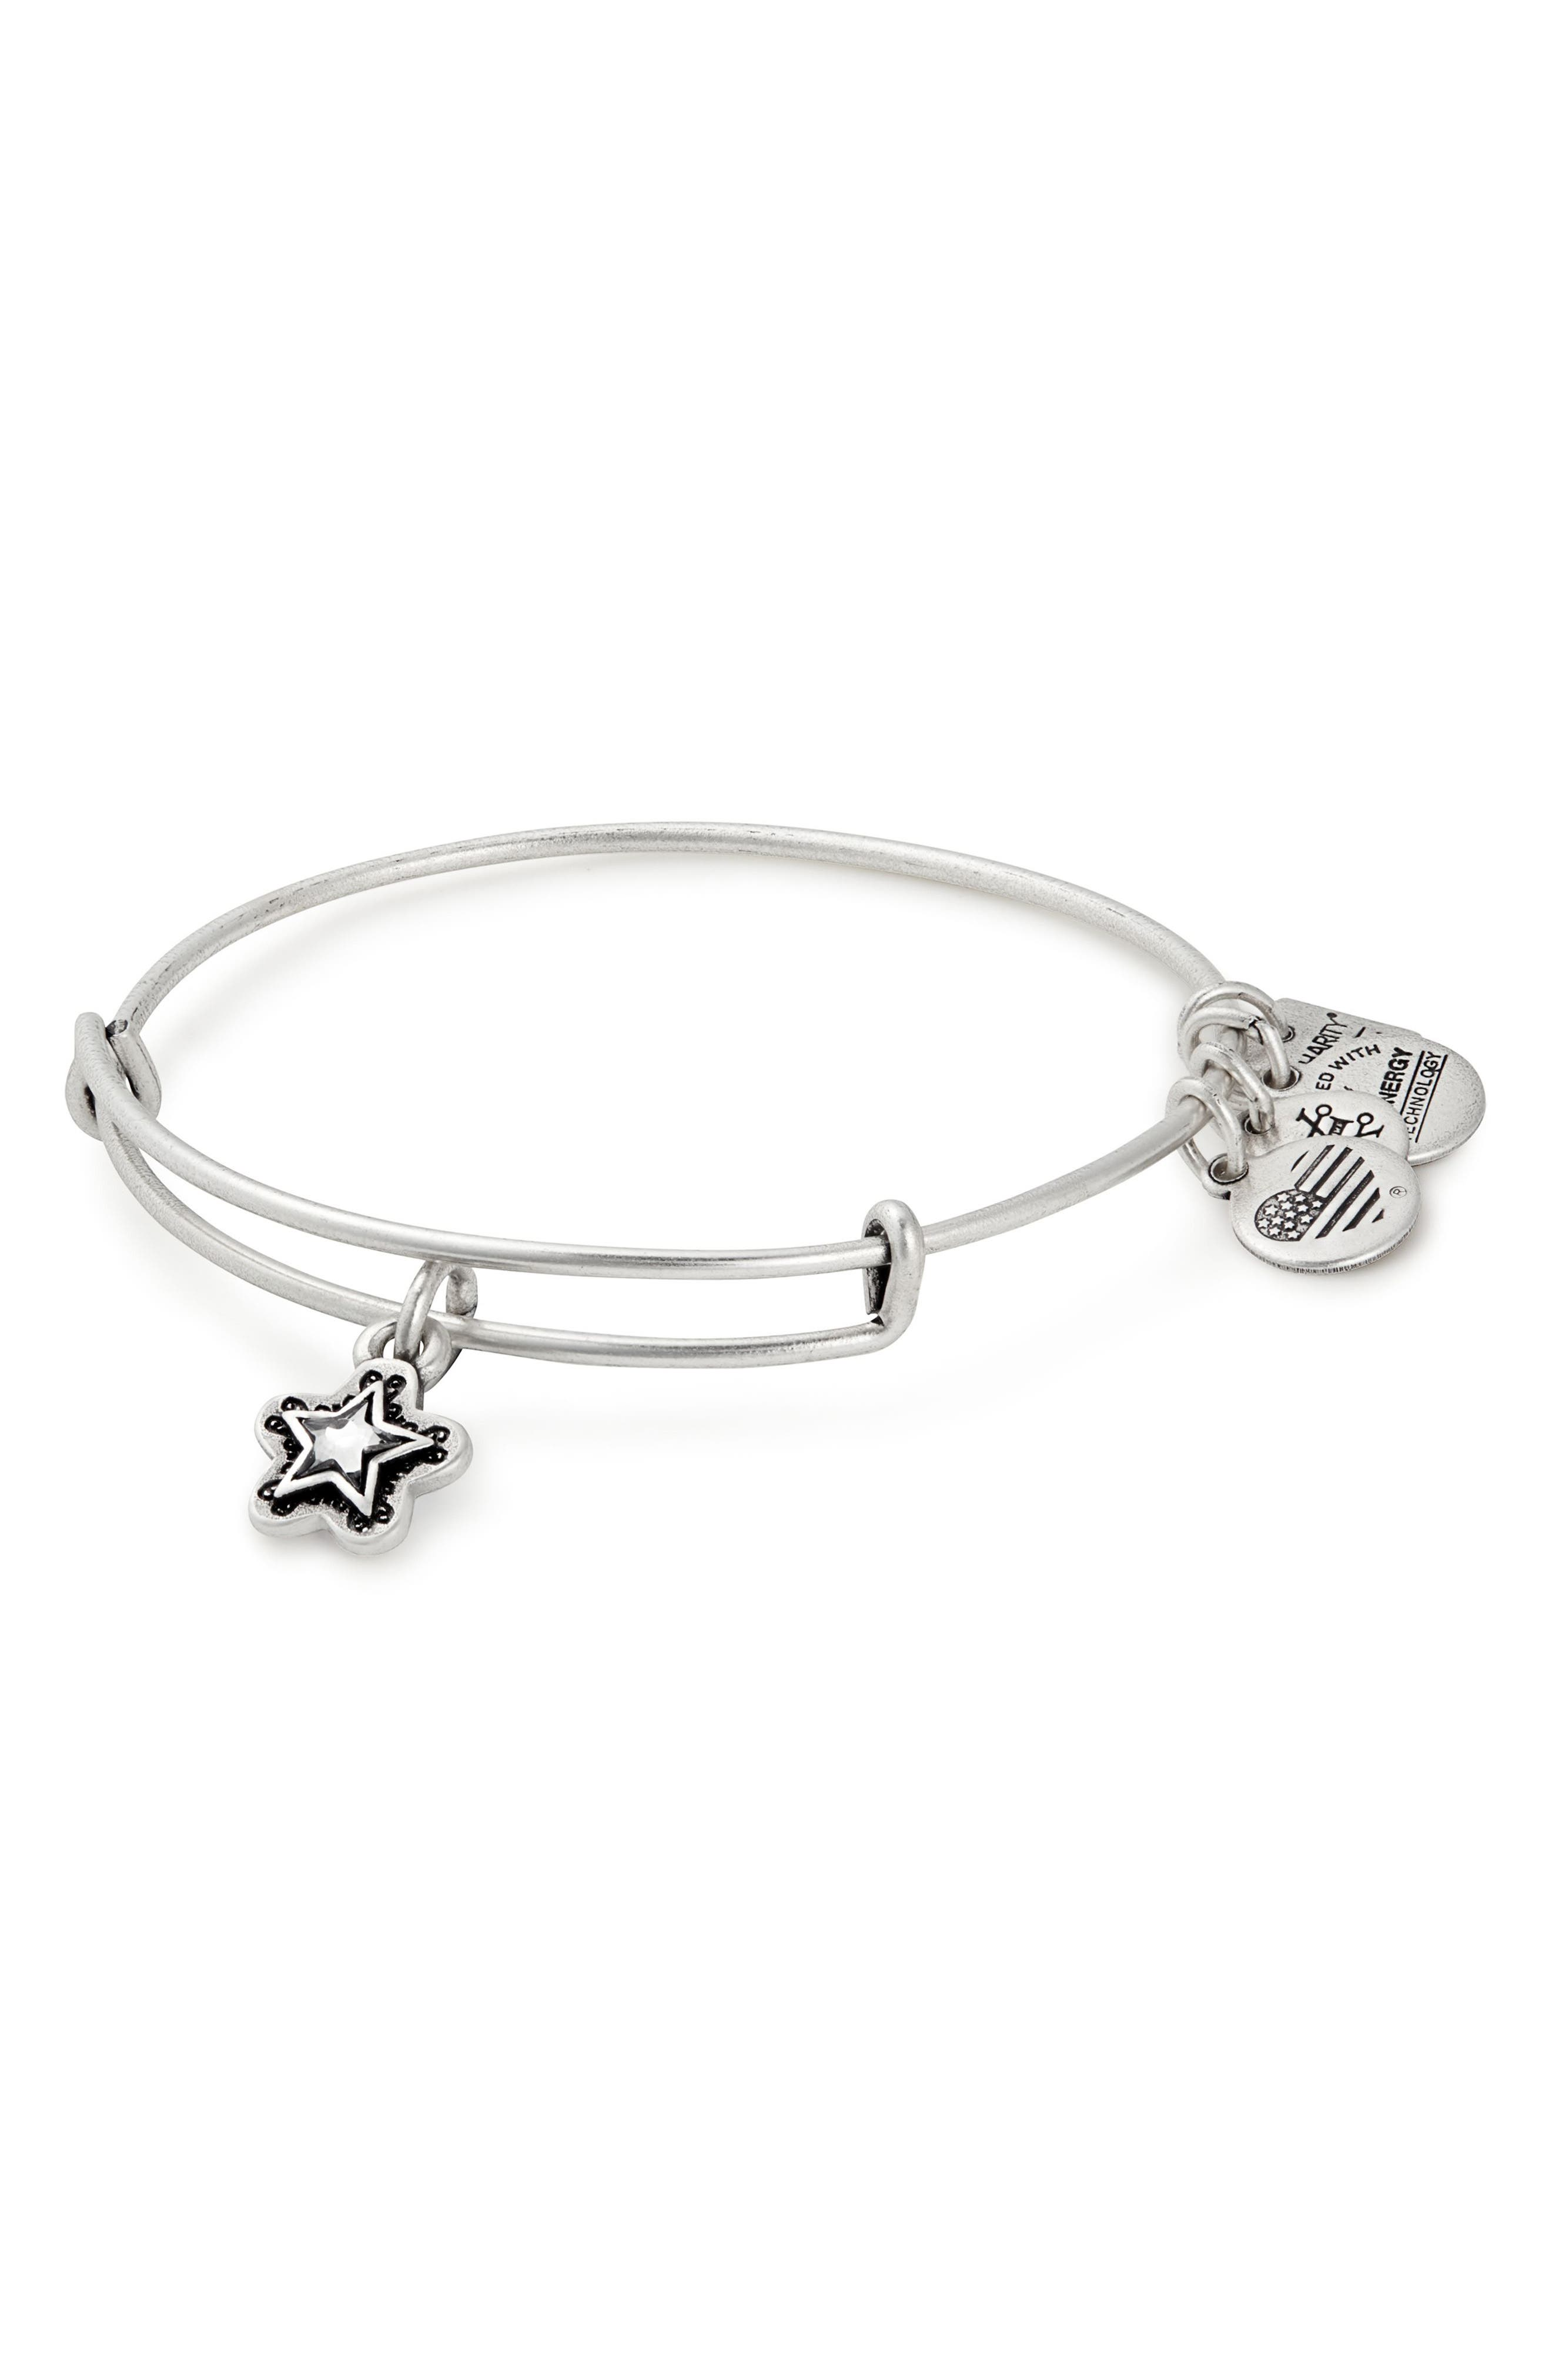 Alex and Ani Charity by Design True Wish Adjustable Bangle